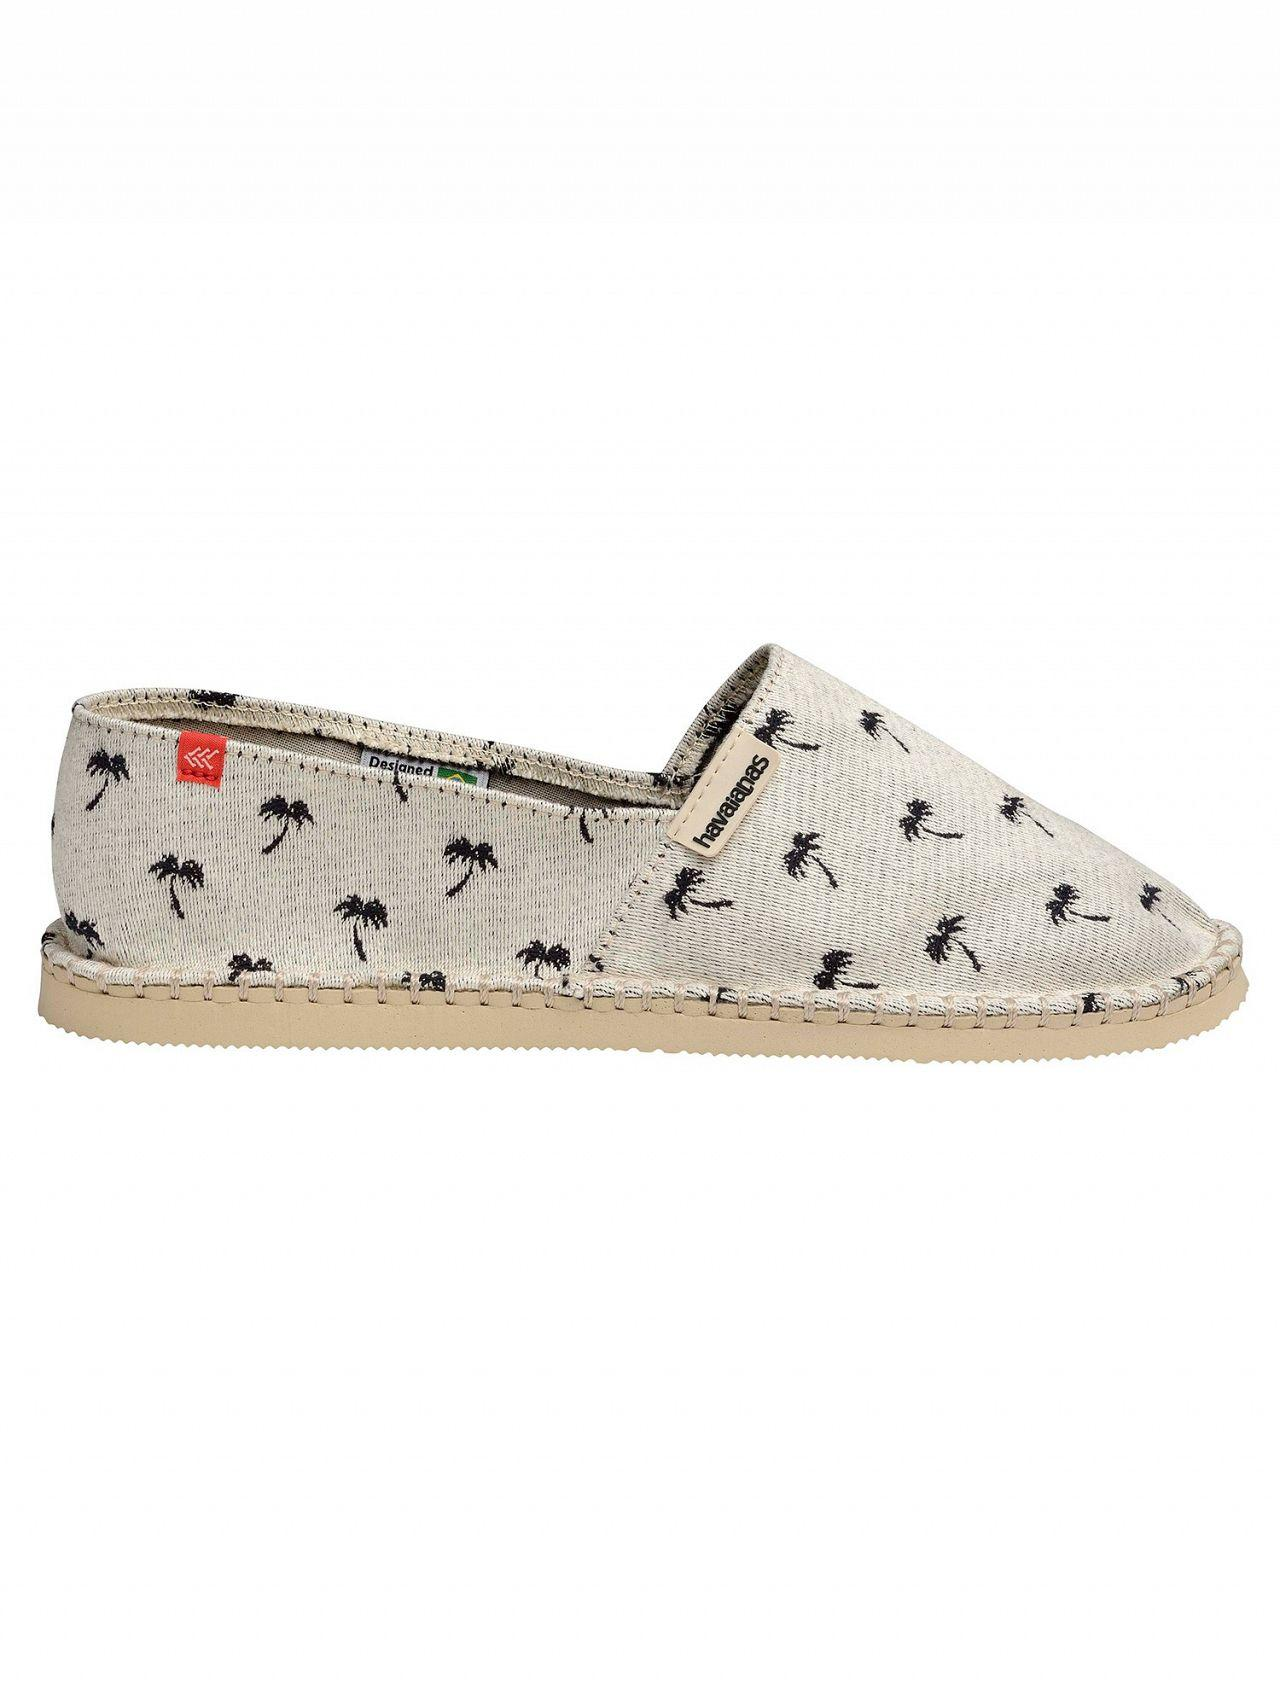 977a131b2 Havaianas Beige Palm Tree Espadrilles in Natural for Men - Lyst